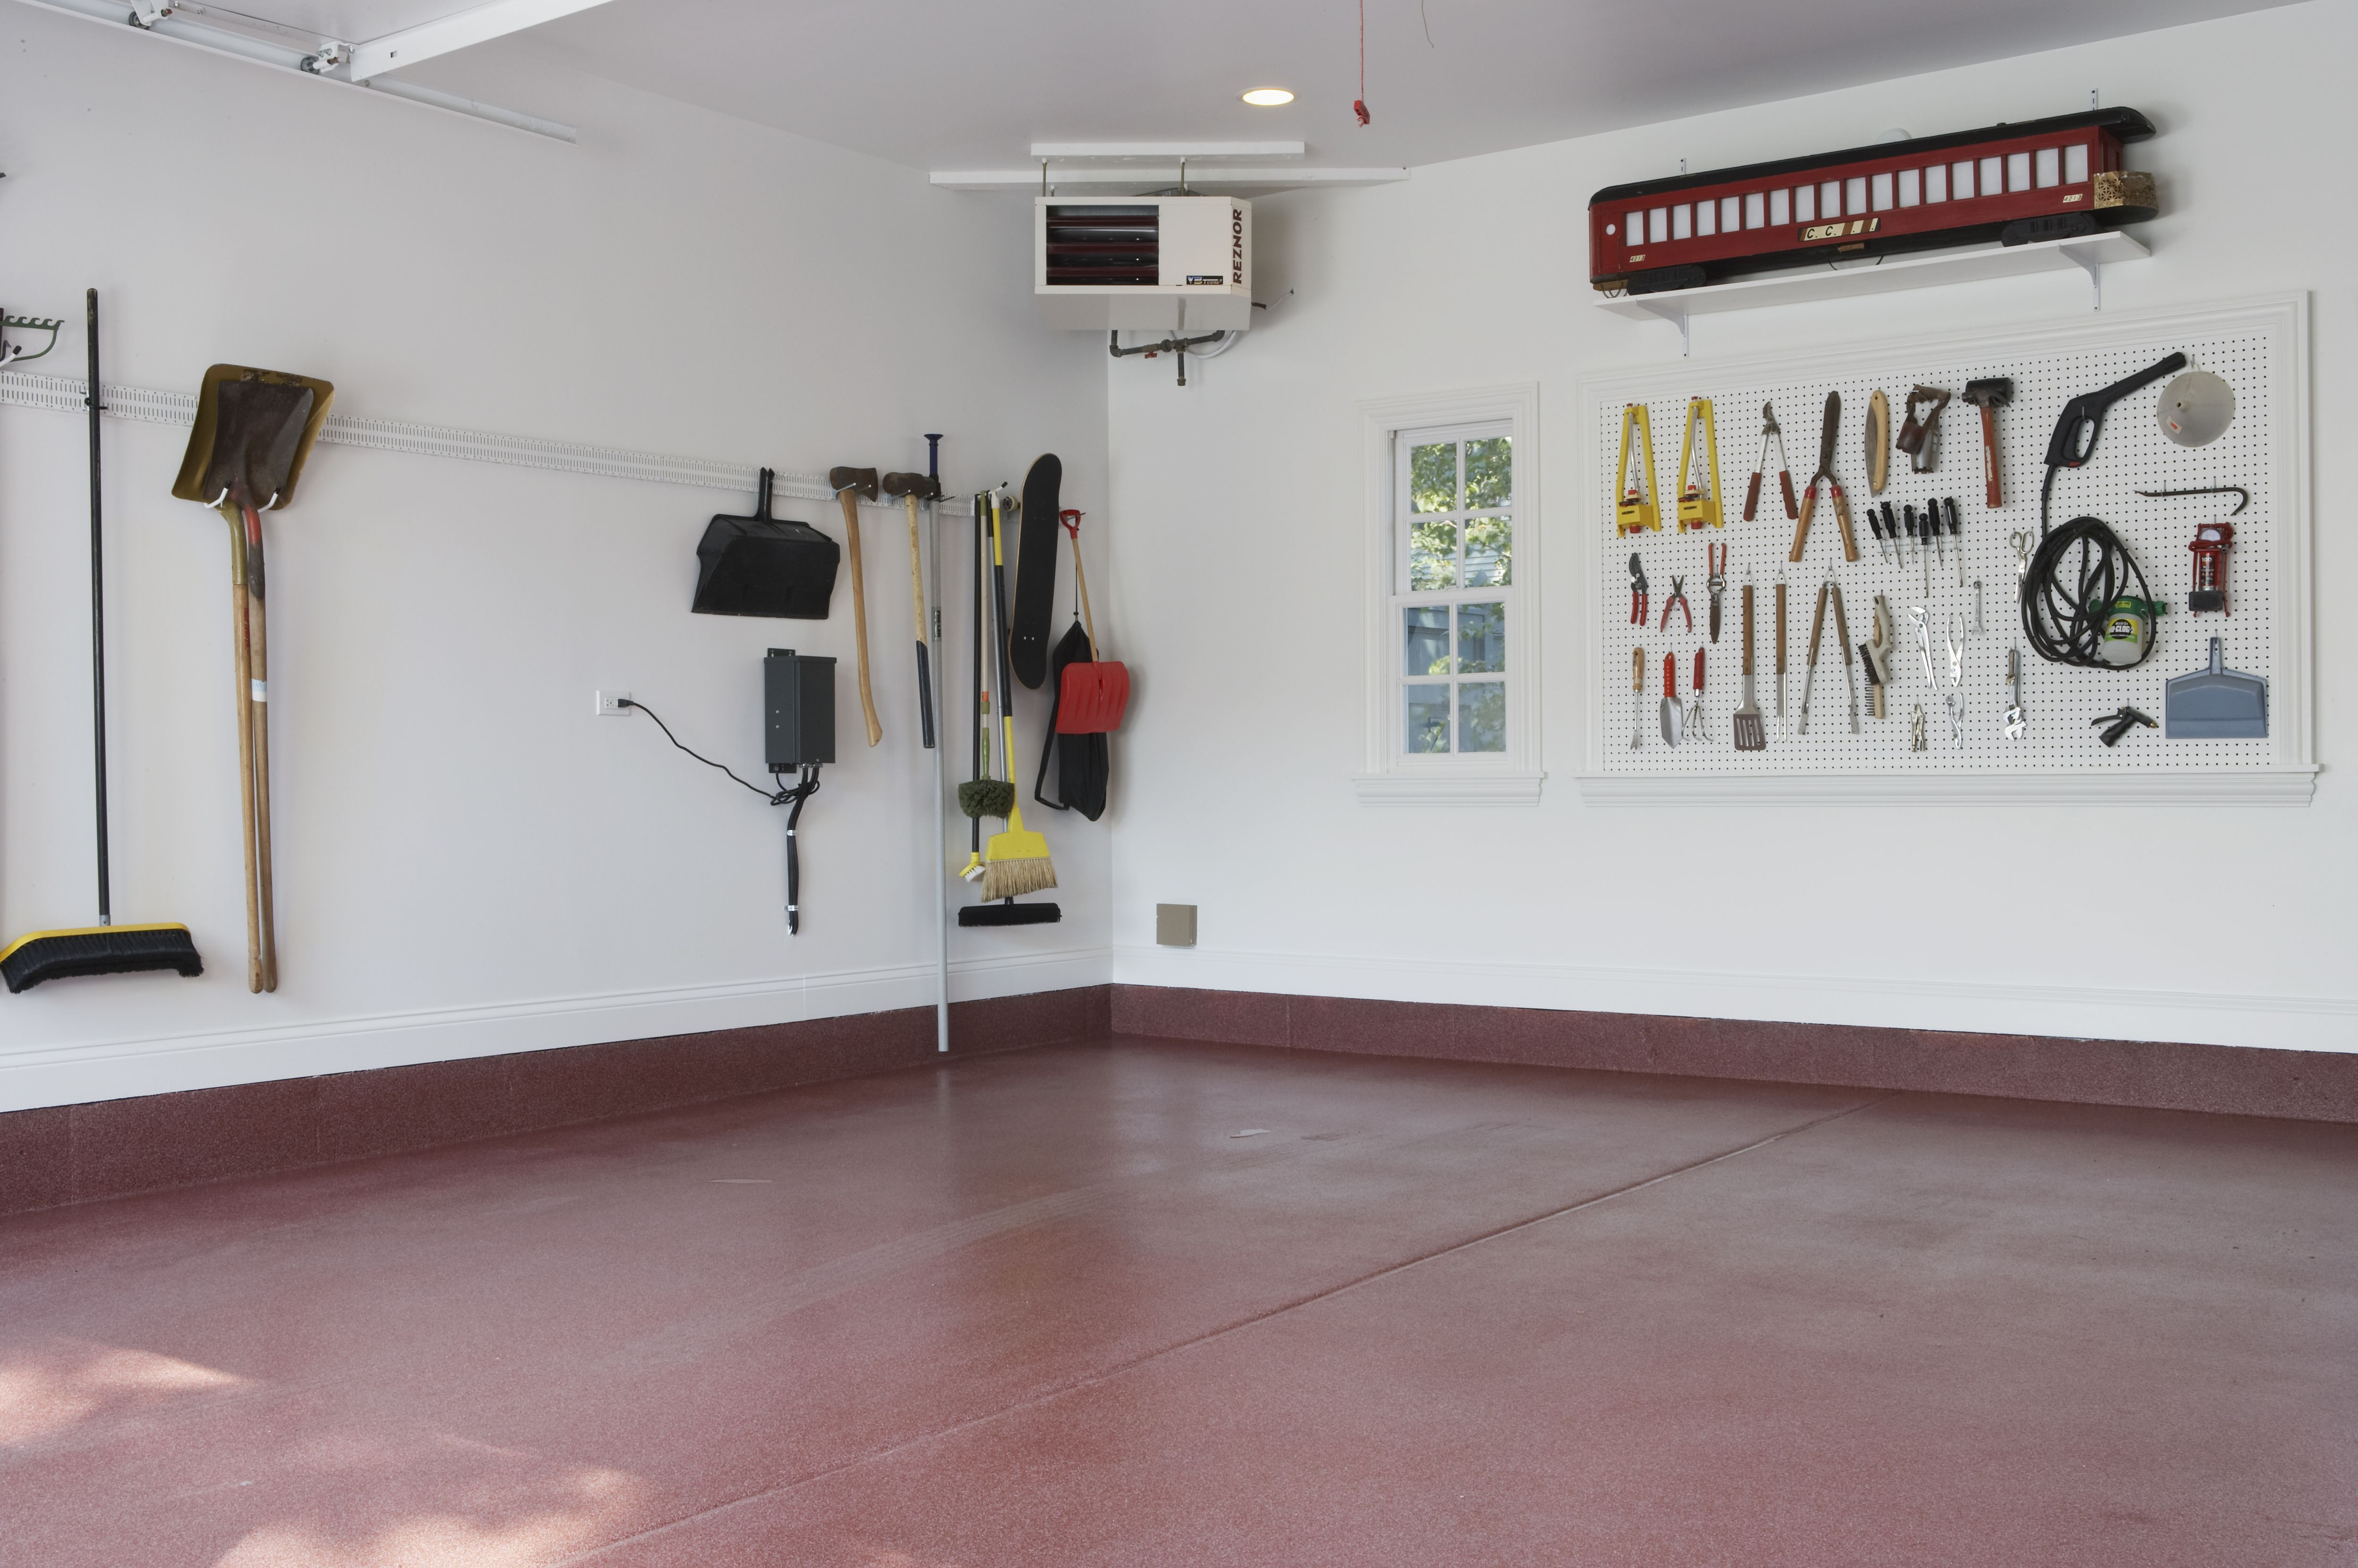 Before You Buy A Garage Wall System